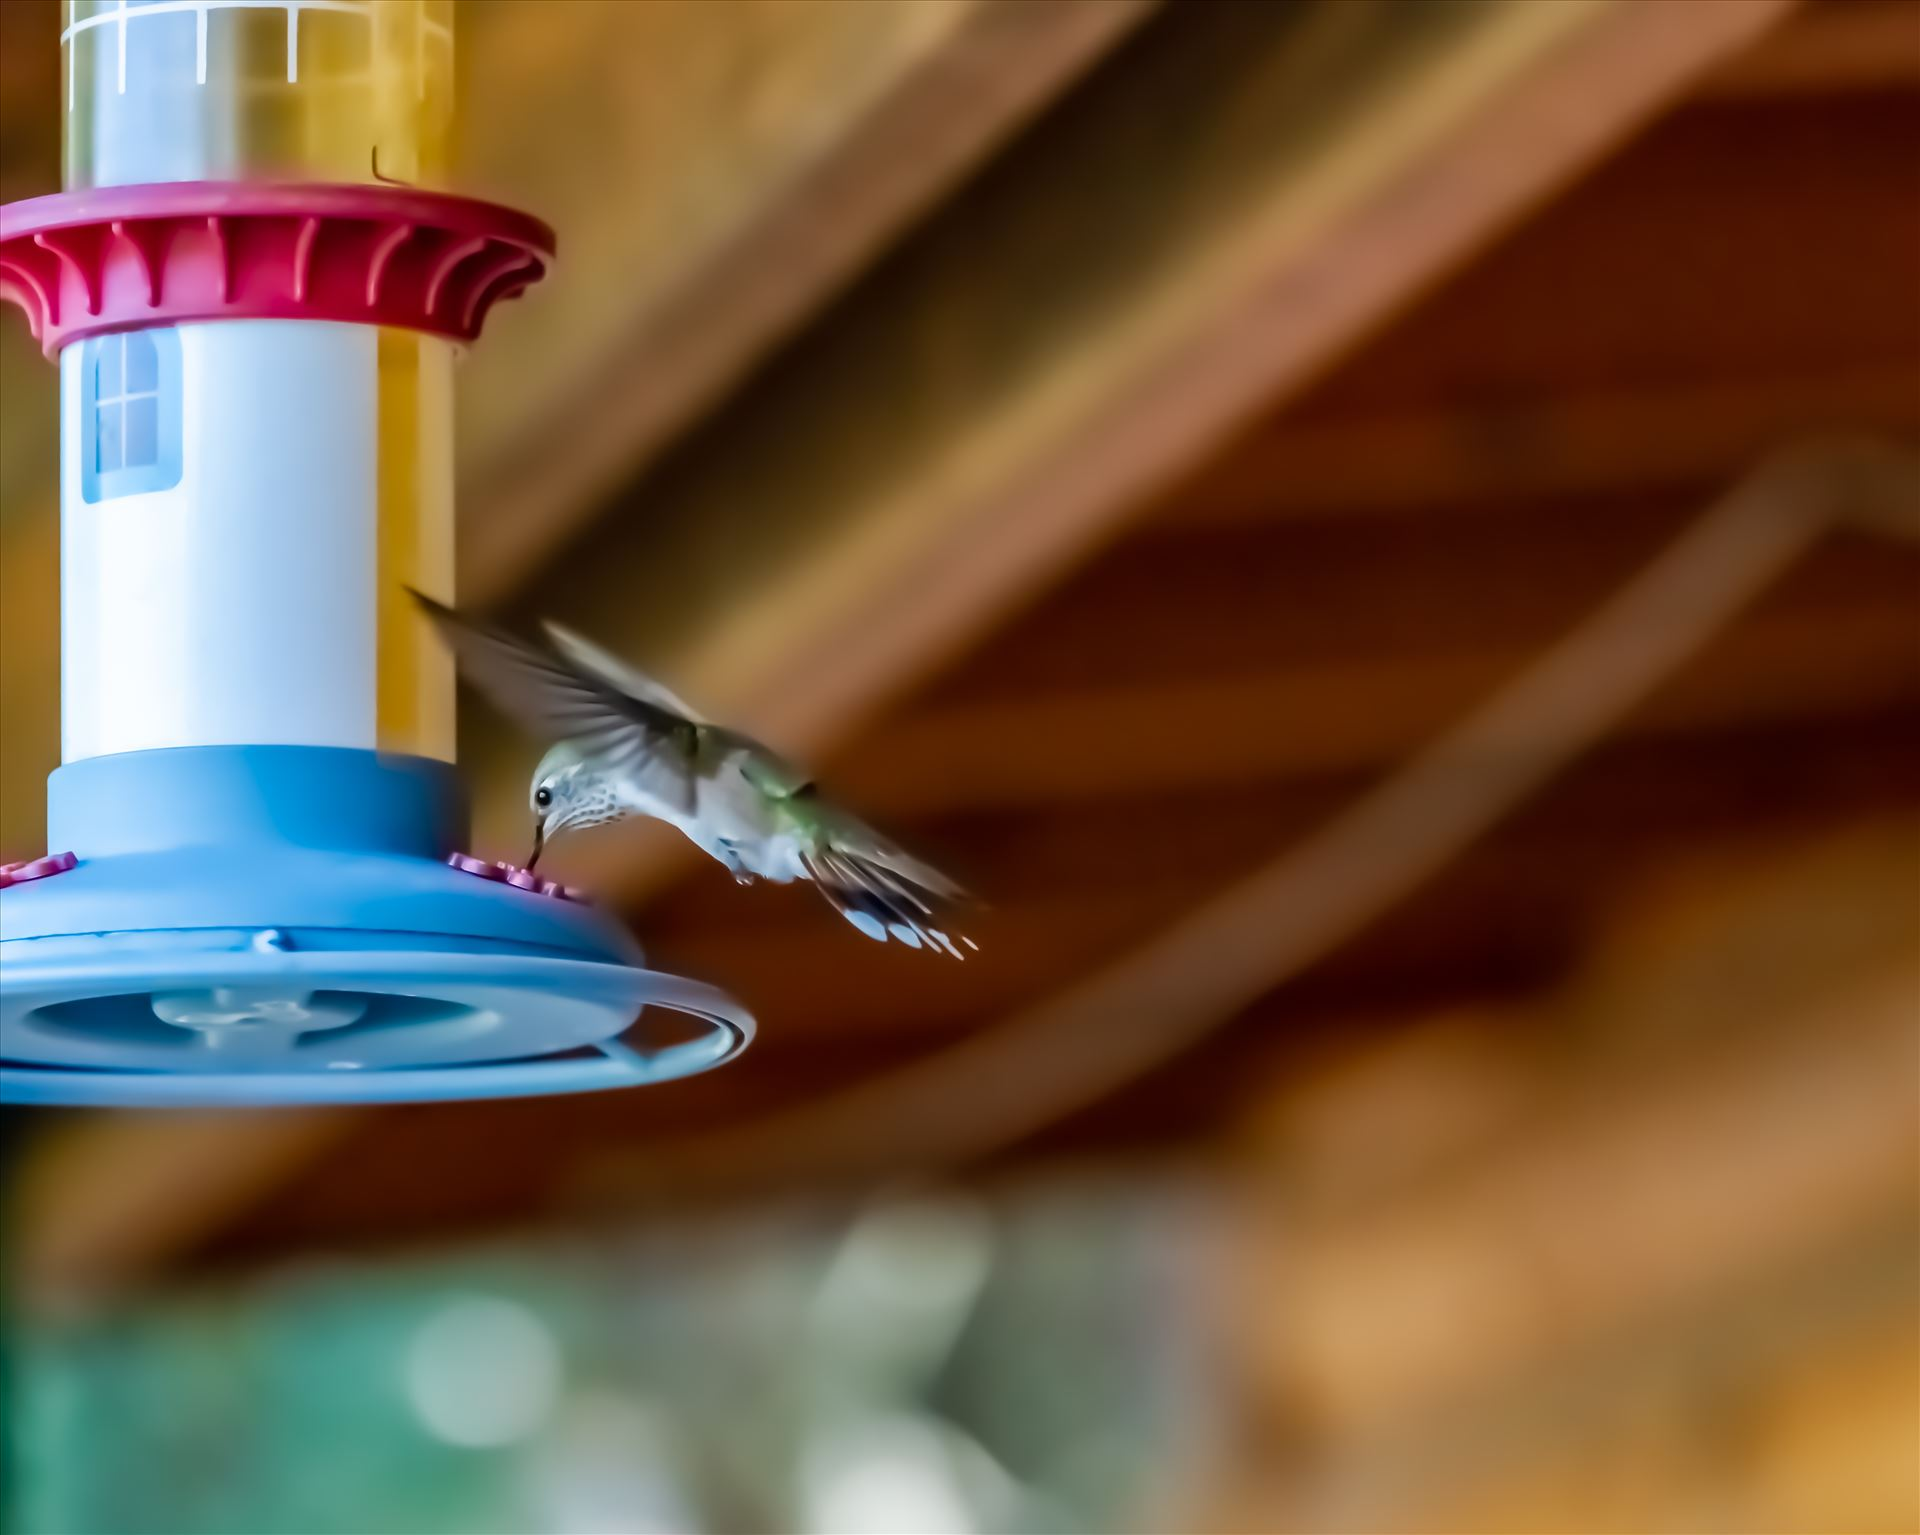 hummingbird at feeder ss as 8500536.jpg Hummingbird drinking sugar water from feeder. Cloudcroft New Mexico, Lincoln National Forest by Terry Kelly Photography